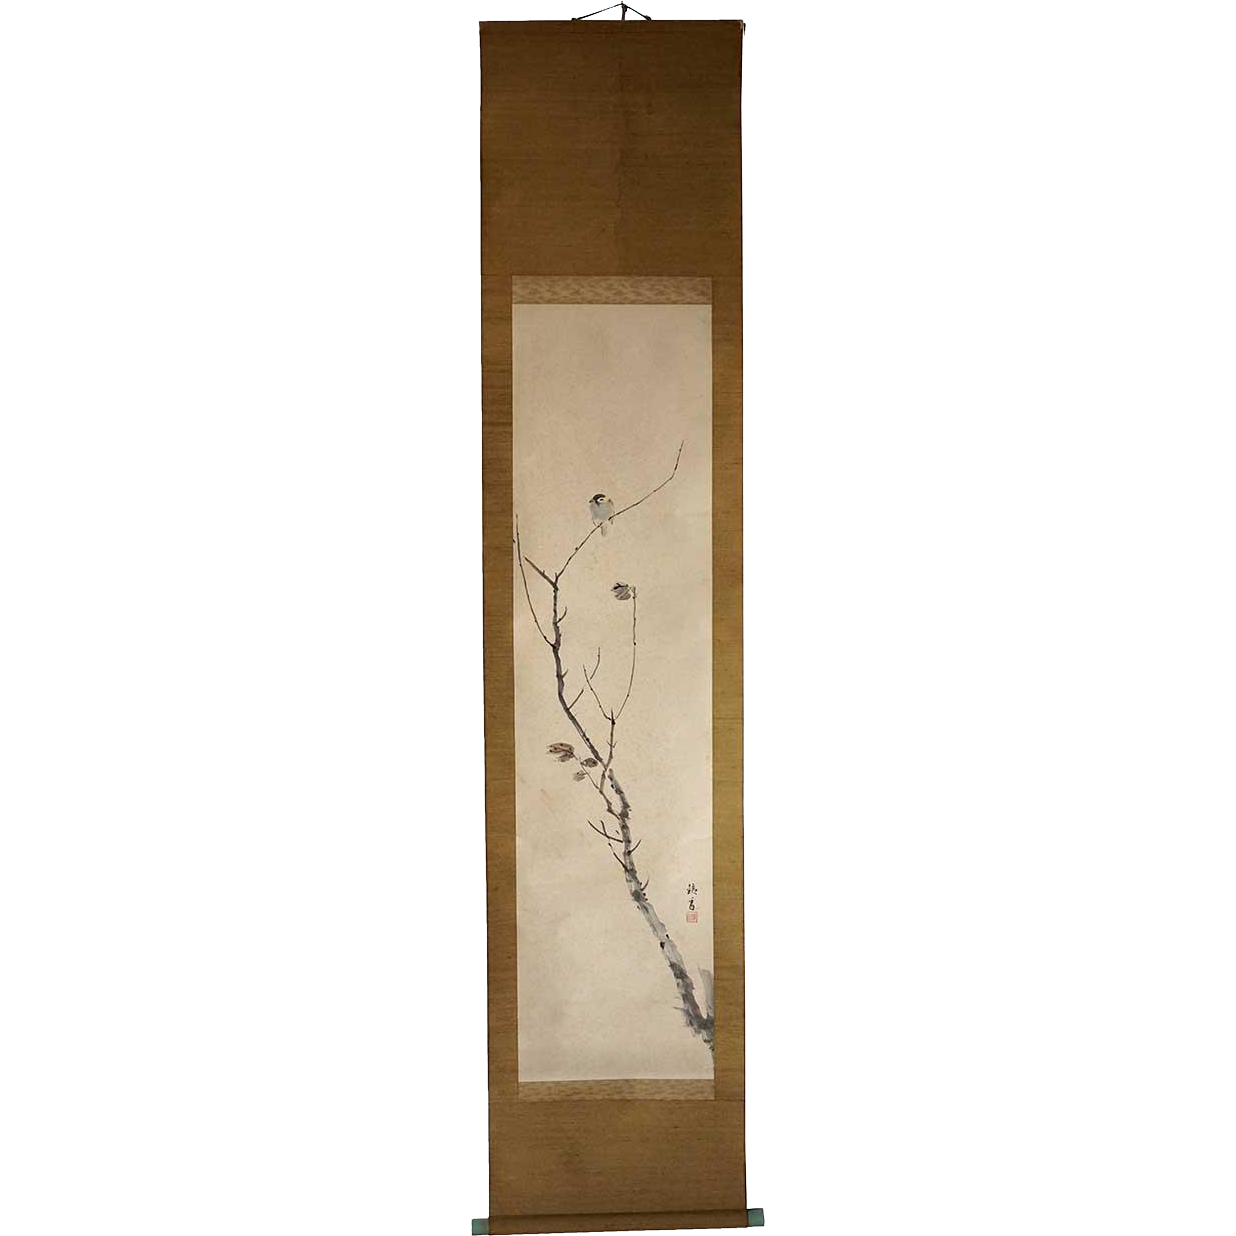 Vintage Japanese Ink Painting on Paper Vertical Hanging Scroll (Kakejiku) of a Sparrow Perched on a Branch